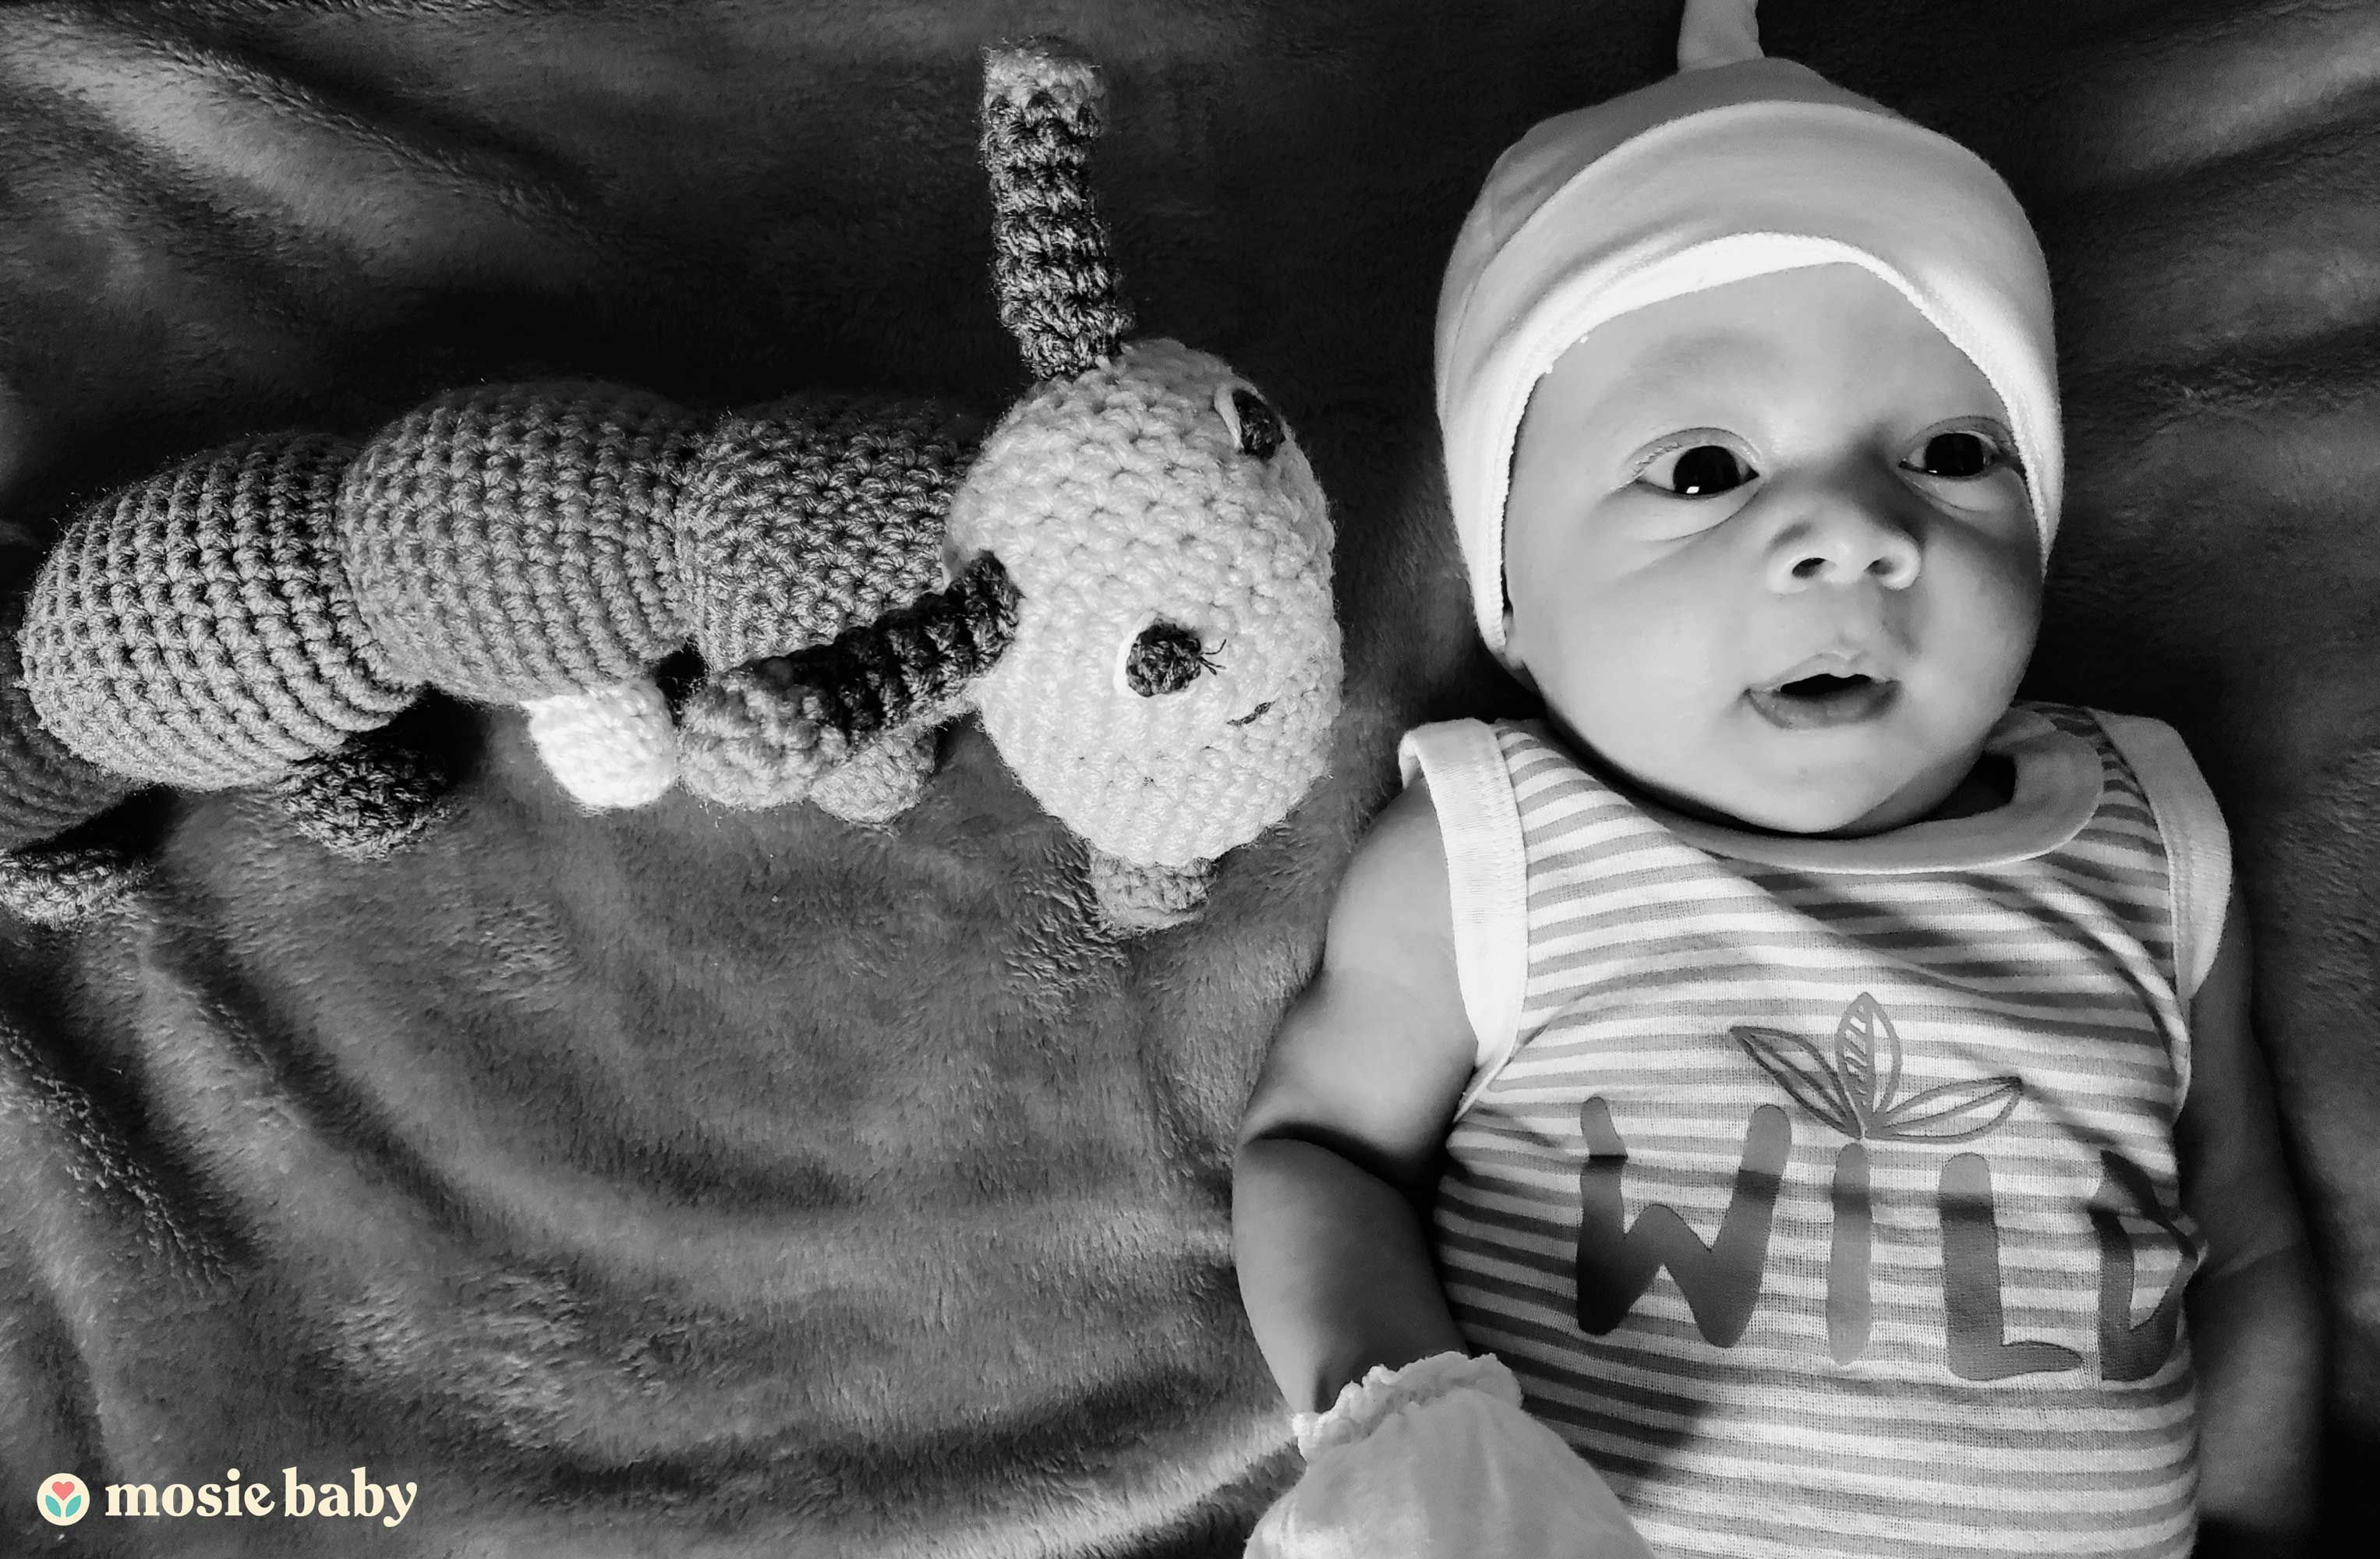 Black and white photo of a baby with a toy stuffed animal